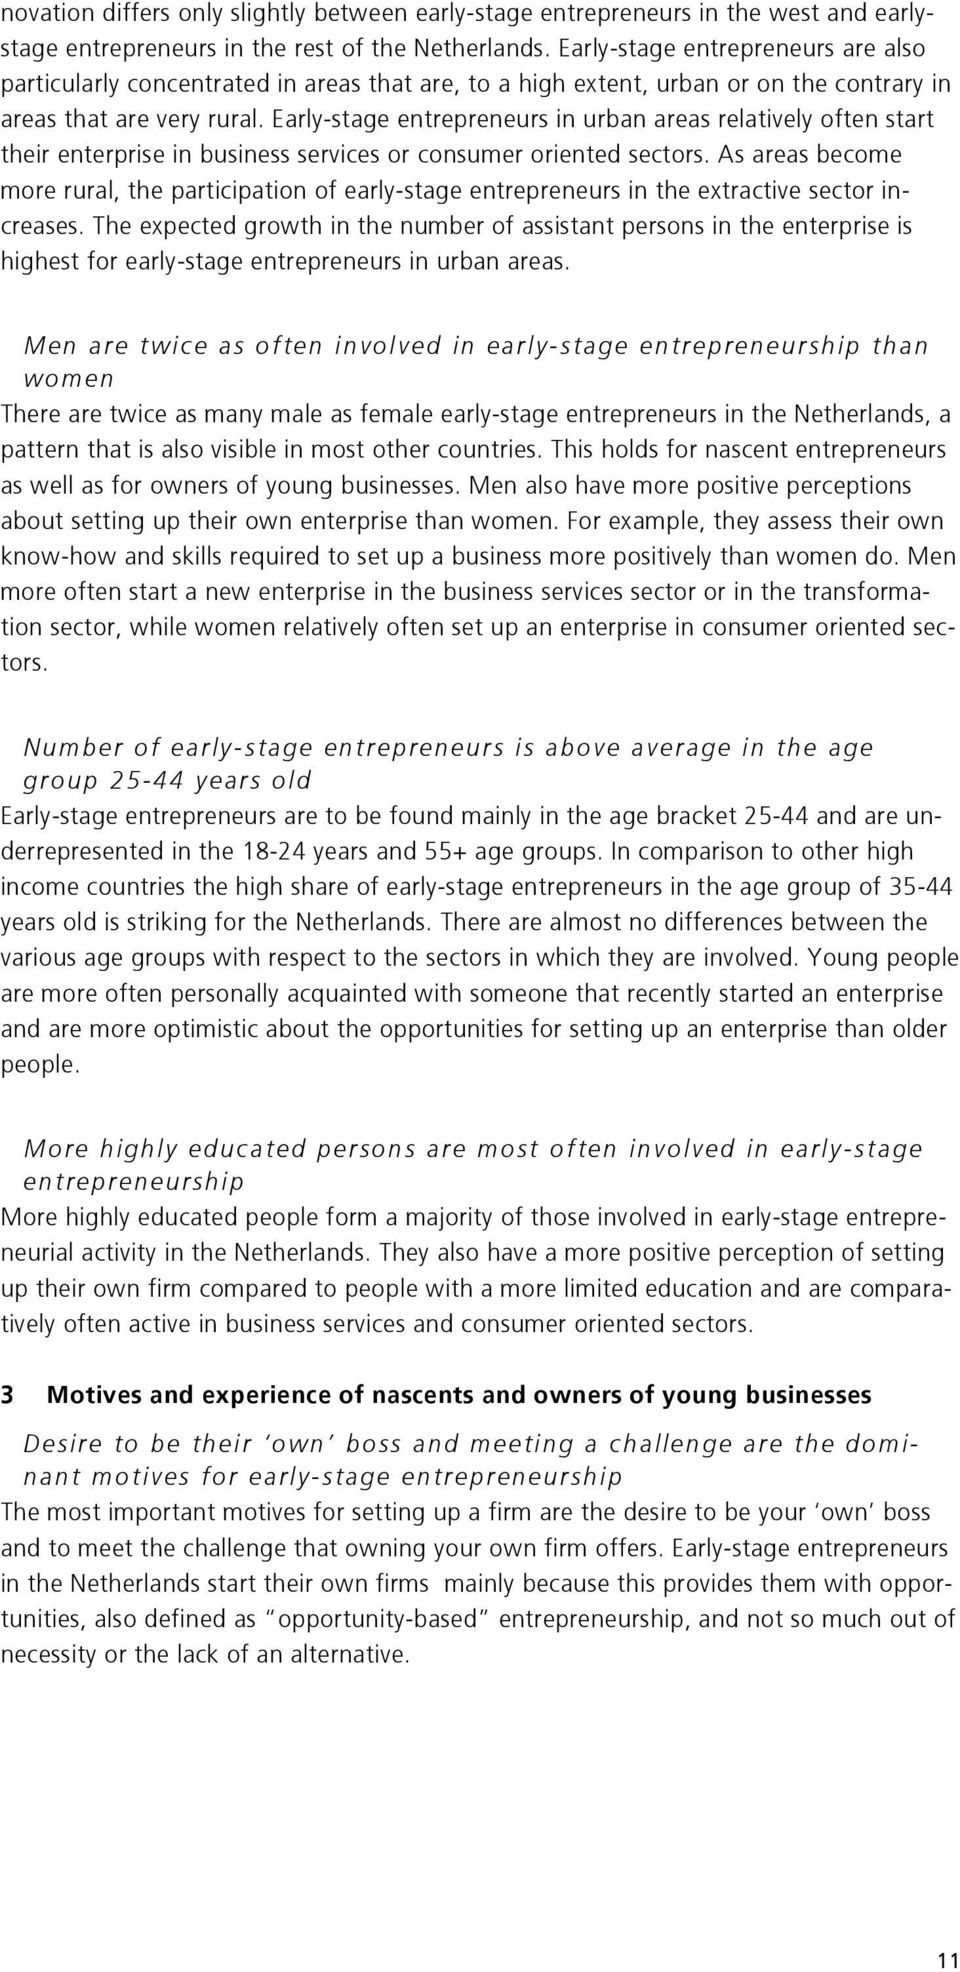 Early-stage entrepreneurs in urban areas relatively often start their enterprise in business services or consumer oriented sectors.